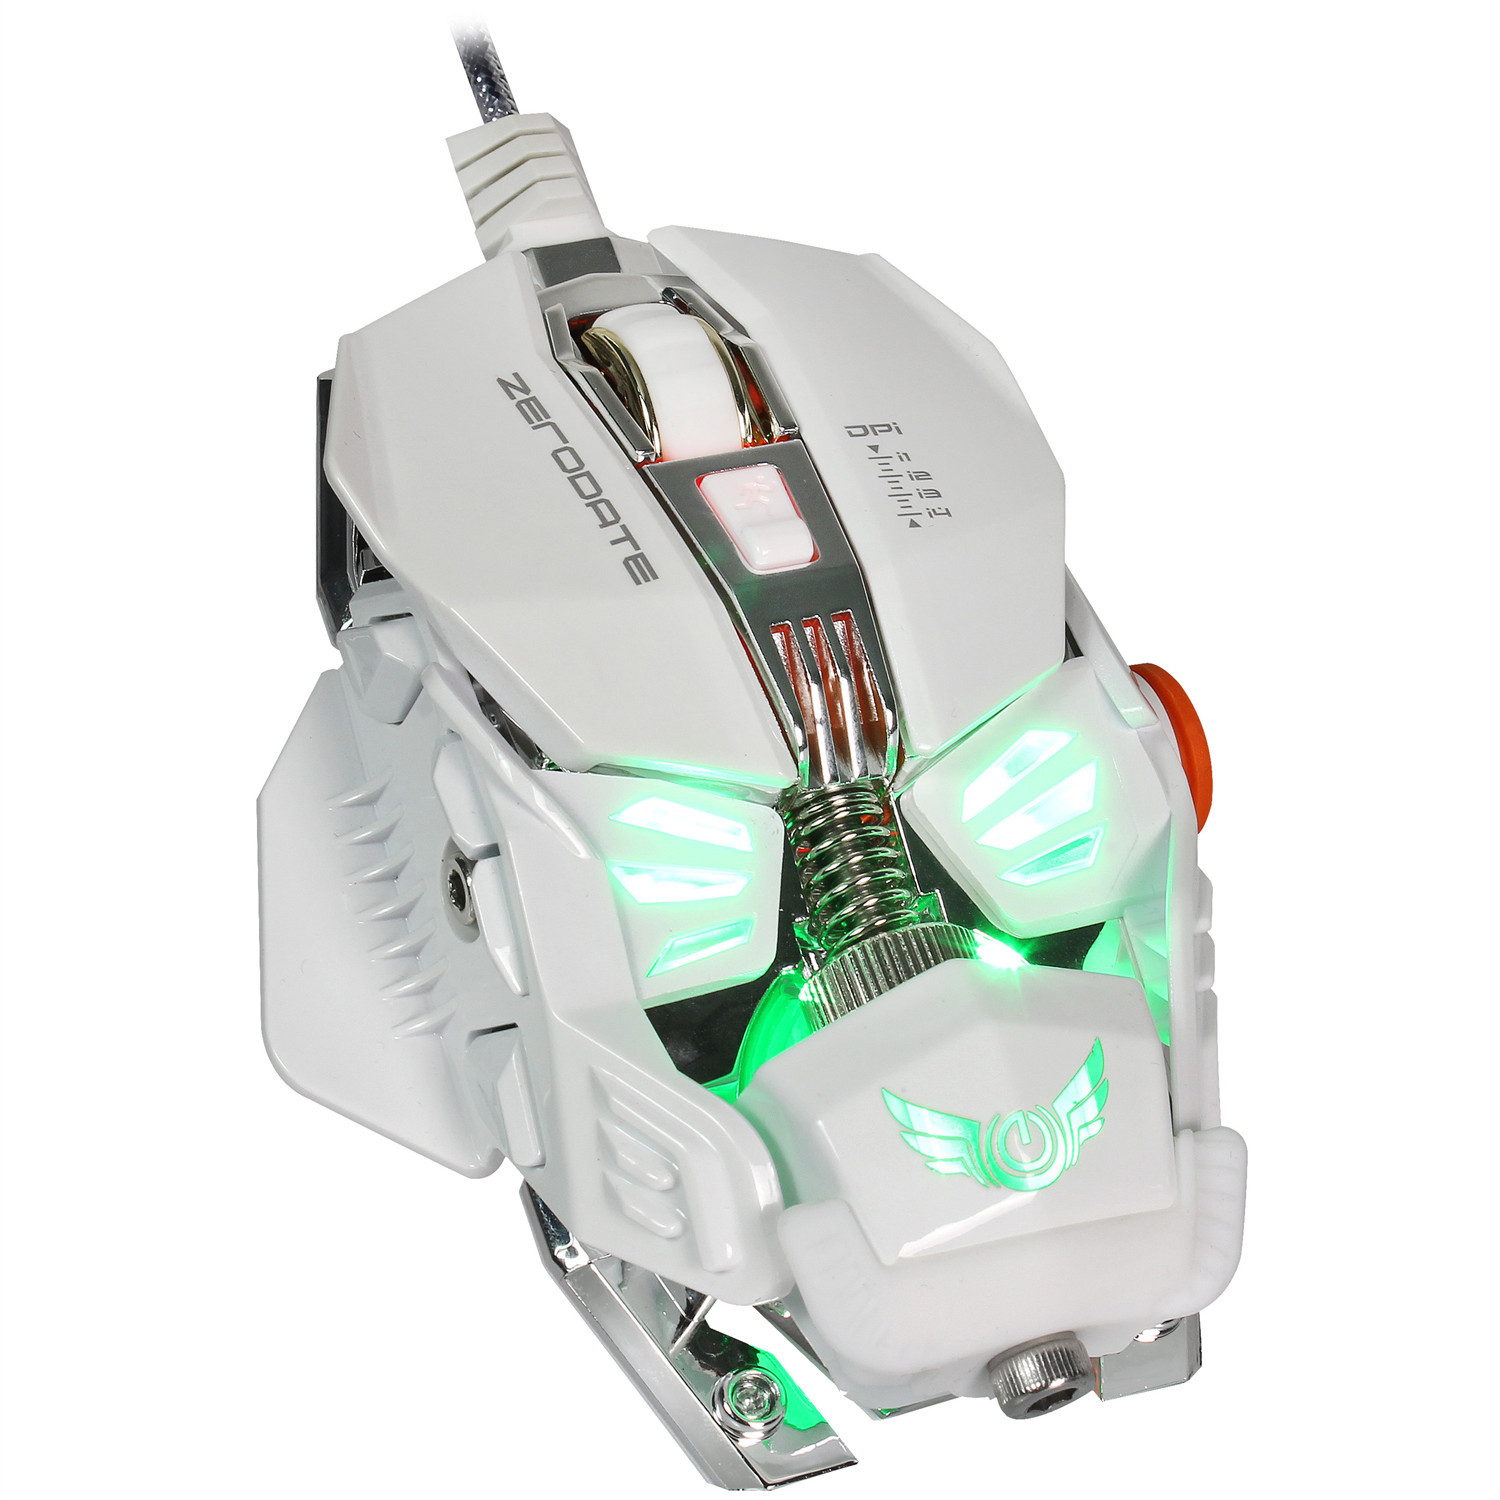 Macro Programming Mouse for Hand-held Competitive Machinery Cable Game 4000dpi Spot Wholesale of Chicken Mouse